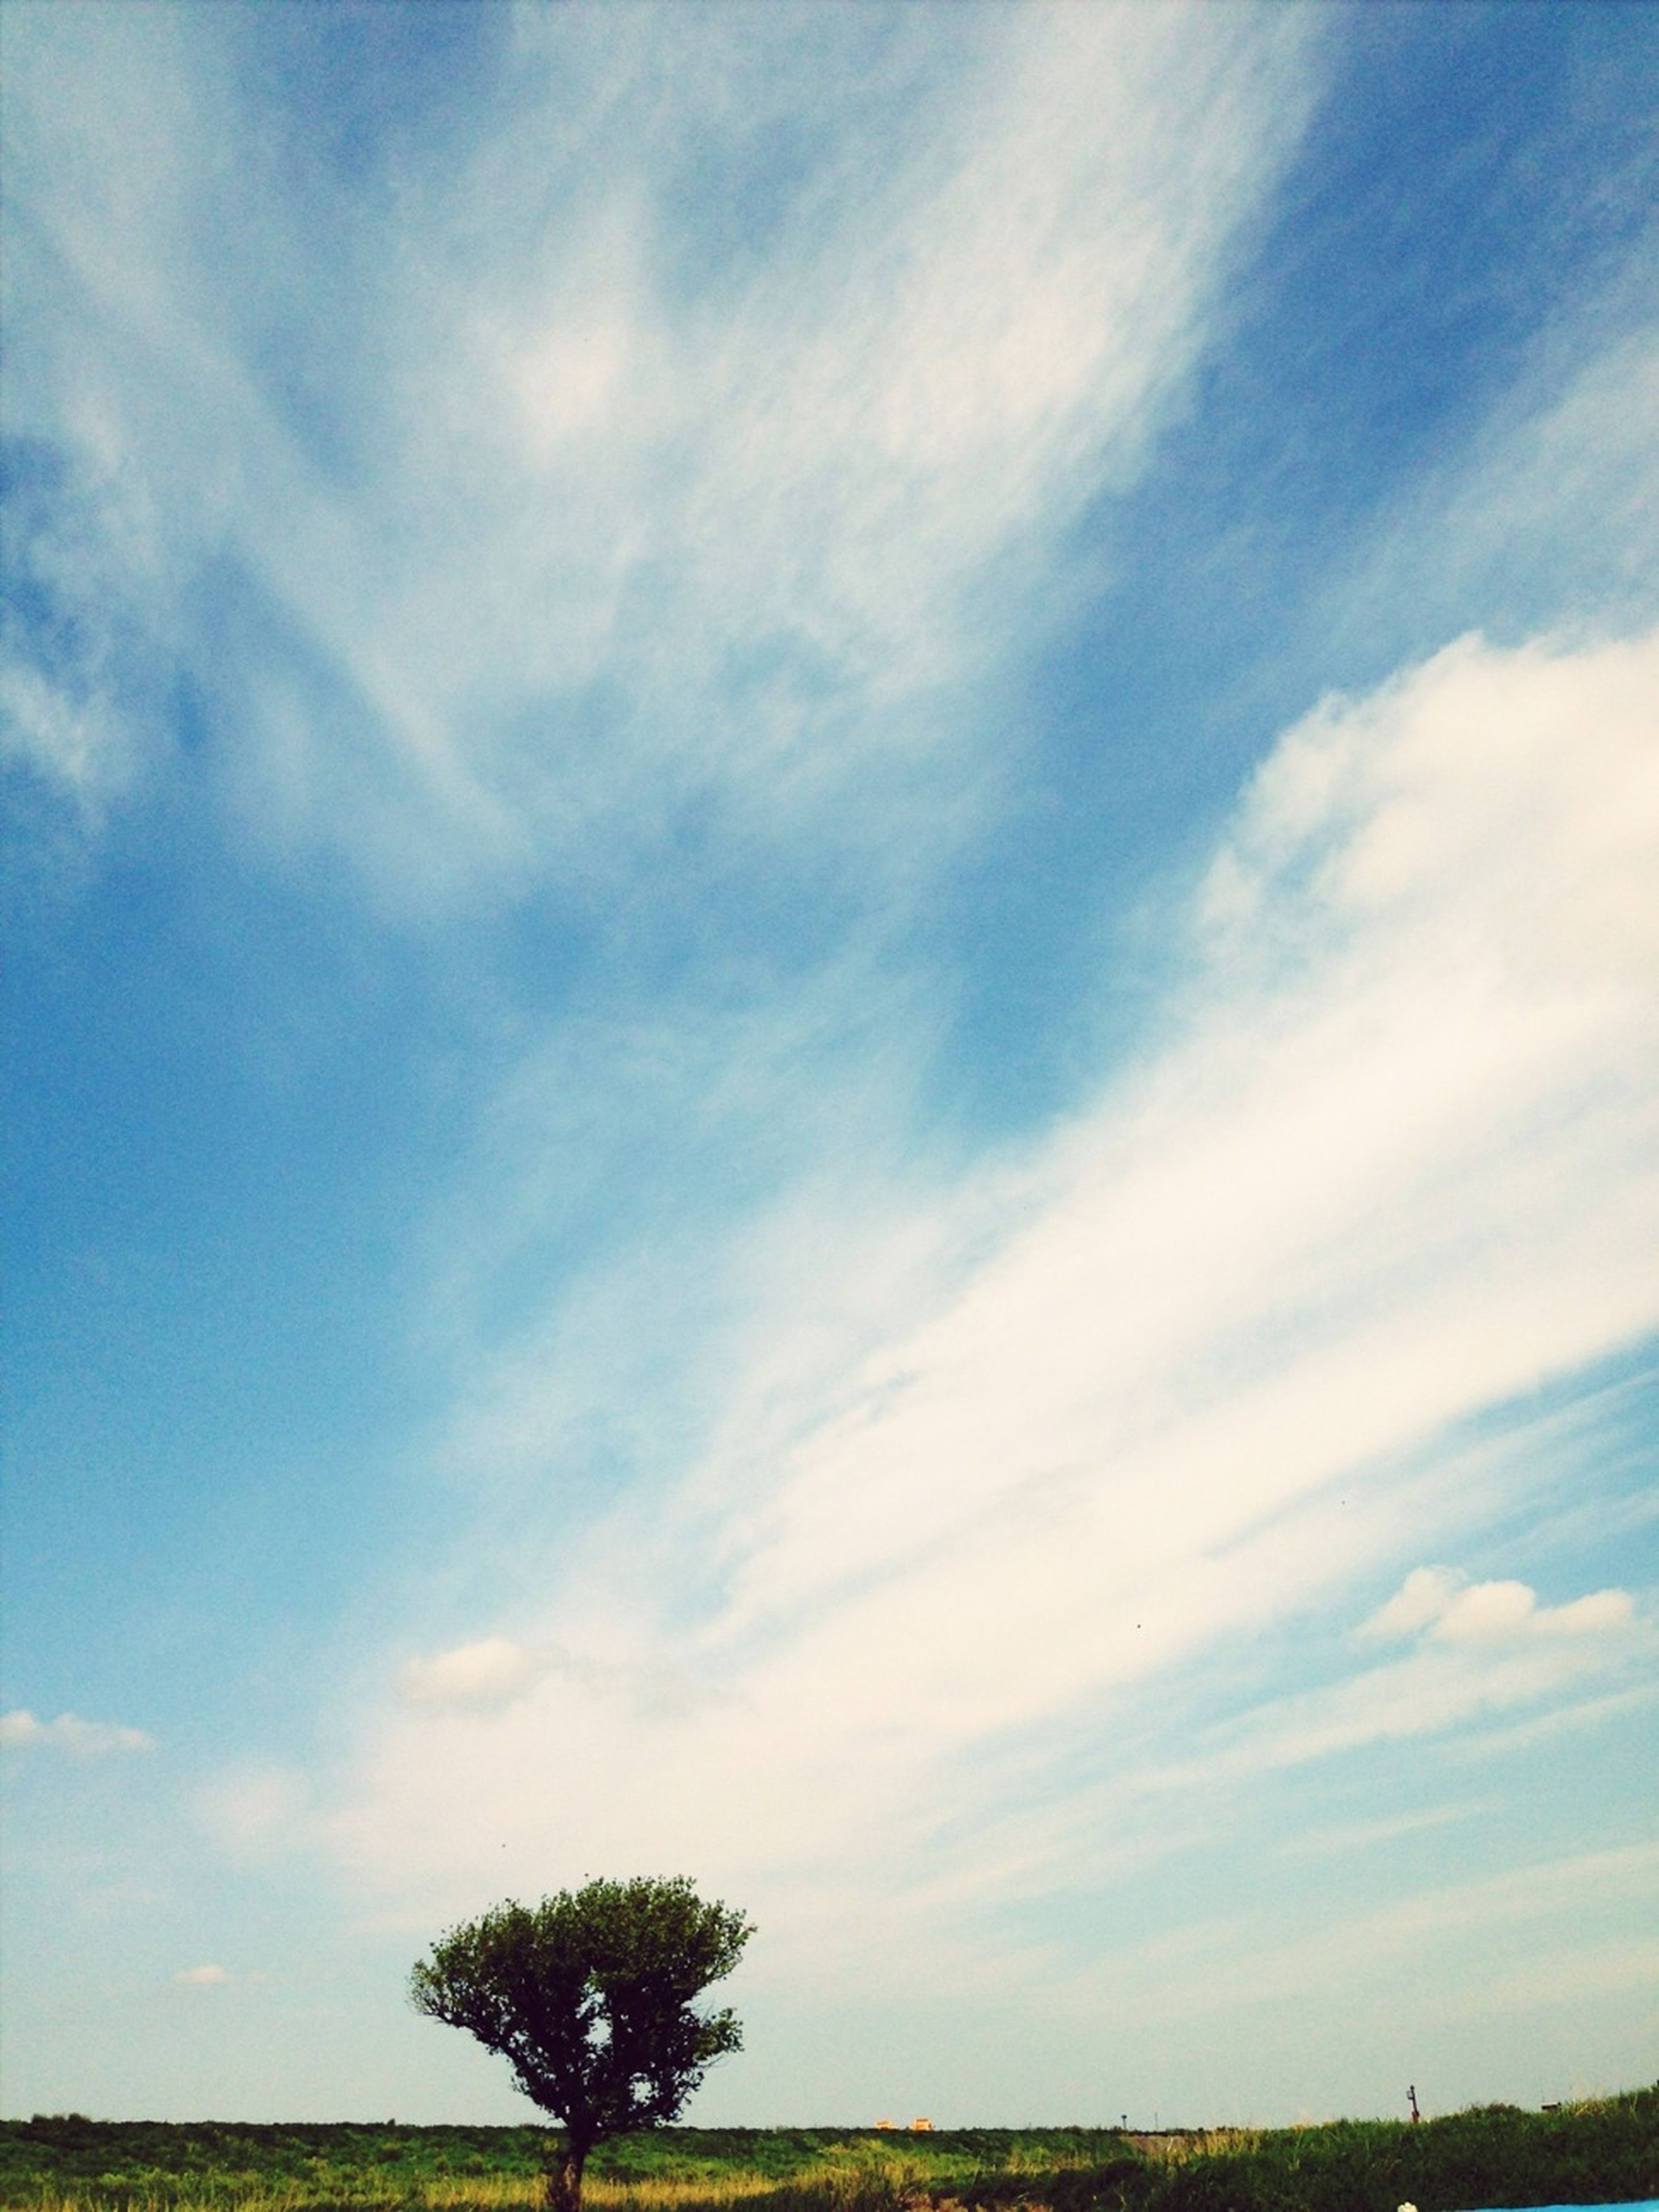 sky, tranquility, tranquil scene, tree, cloud - sky, beauty in nature, scenics, nature, cloud, field, grass, landscape, blue, growth, cloudy, idyllic, outdoors, no people, non-urban scene, low angle view